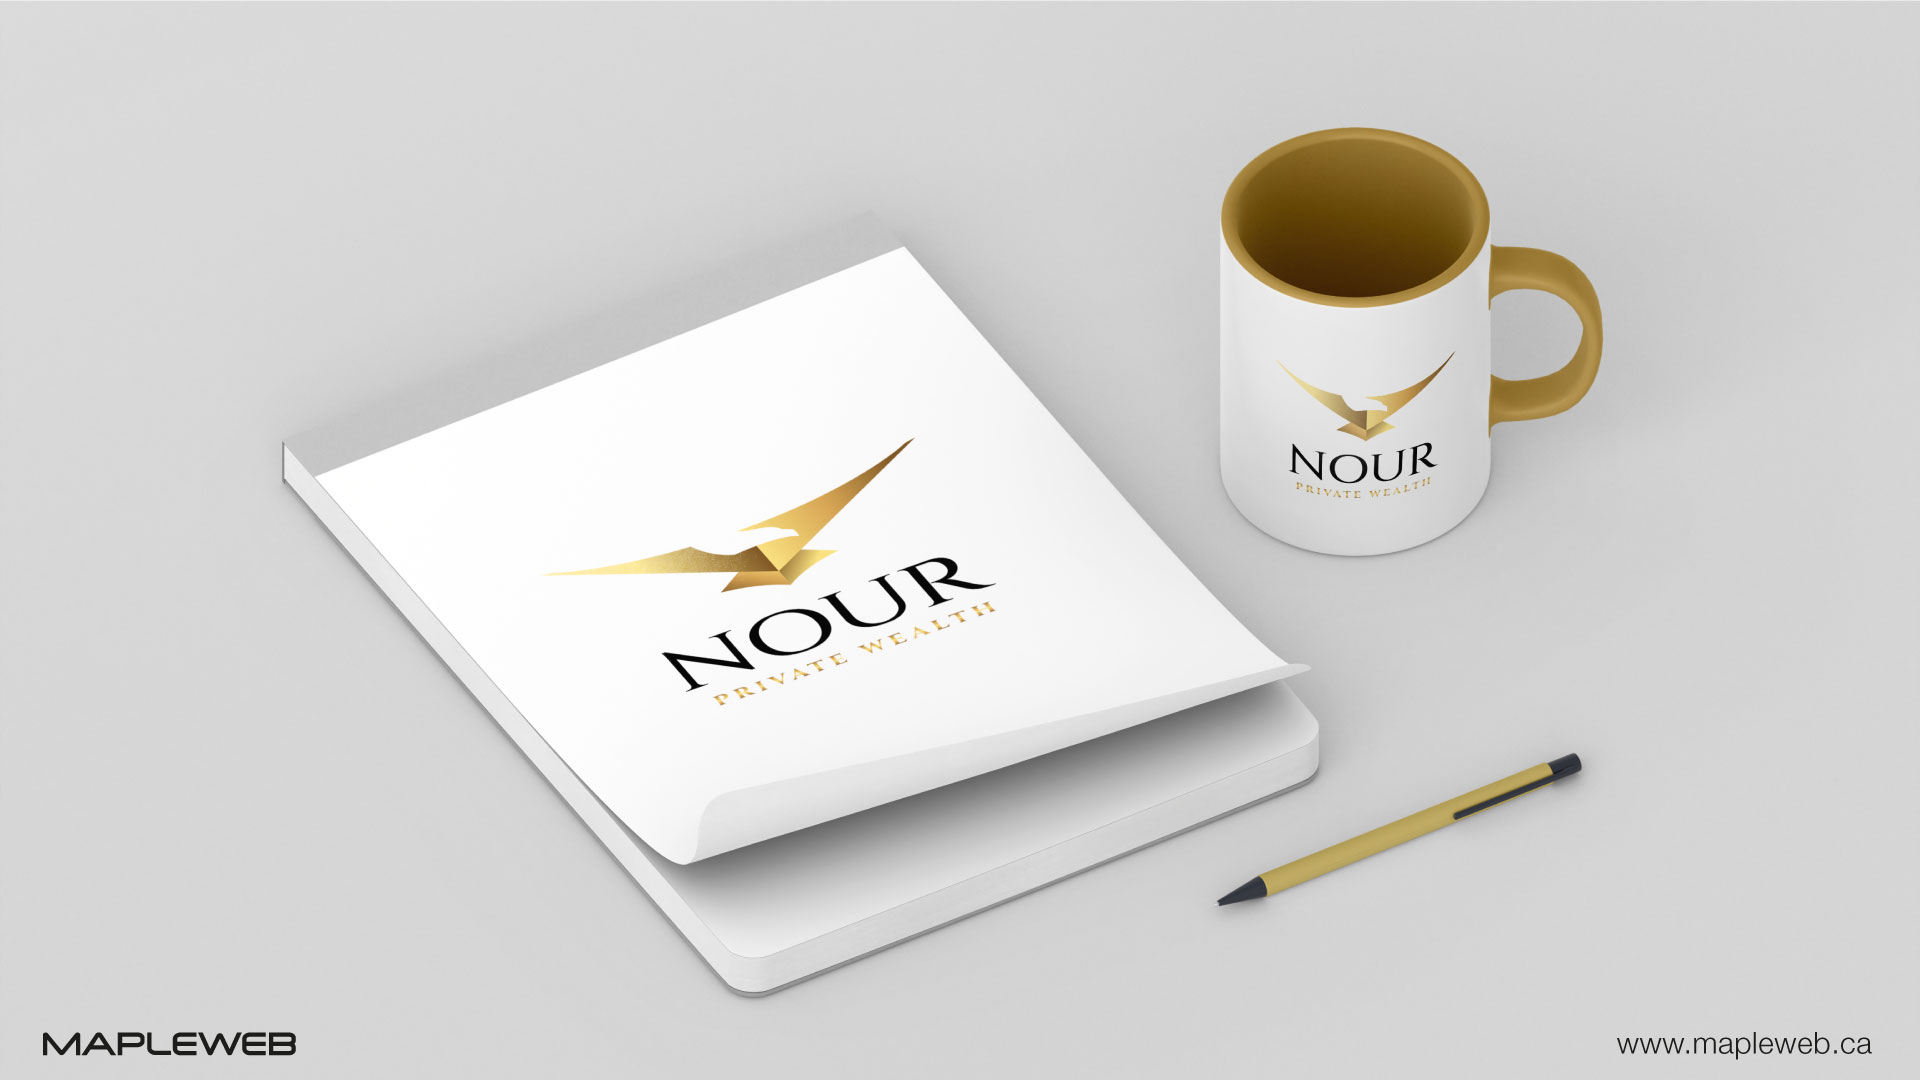 nour-private-wealth-brand-logo-design-by-mapleweb-vancouver-canada-notebook-and-mug-mock